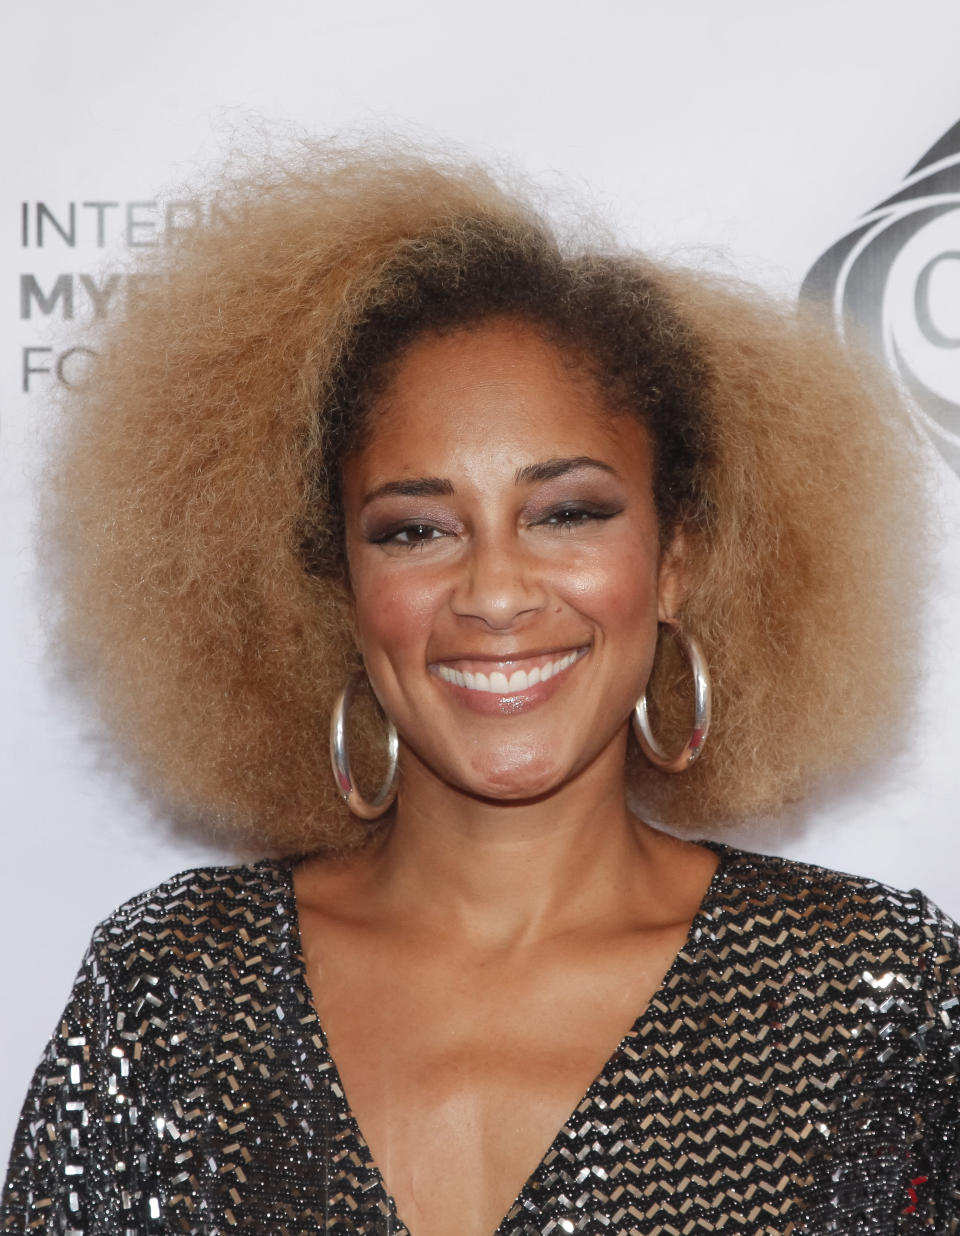 Amanda Seales is not renewing her contract as <em>The Real</em> co-host. (Photo: Tibrina Hobson/Getty Images)